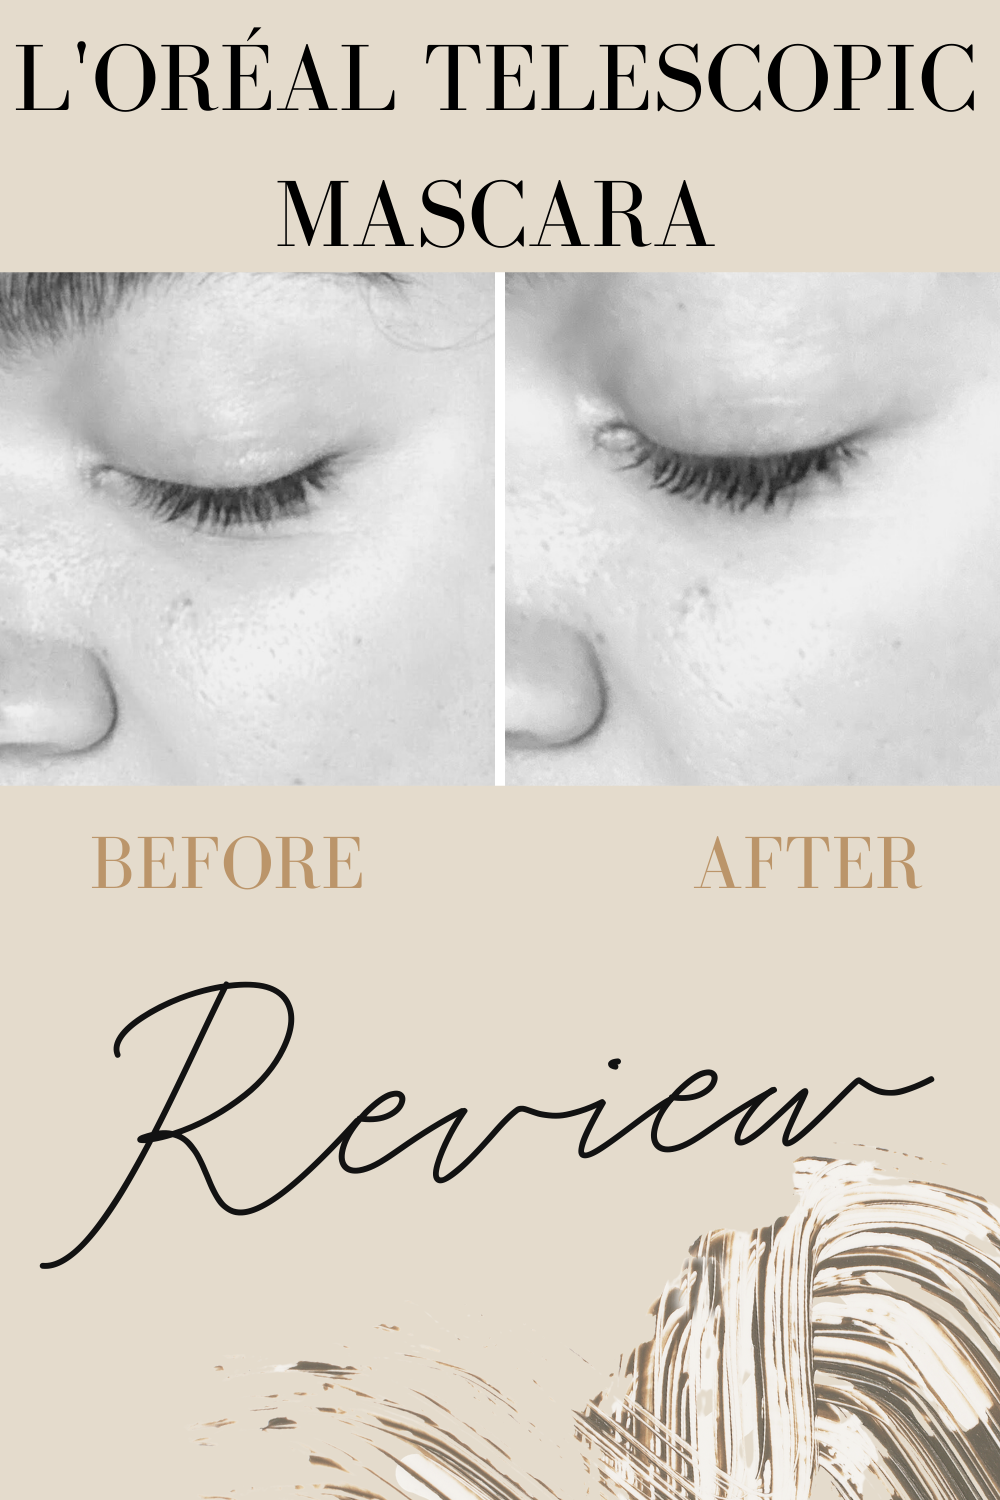 loreal telescopic mascara review before and after